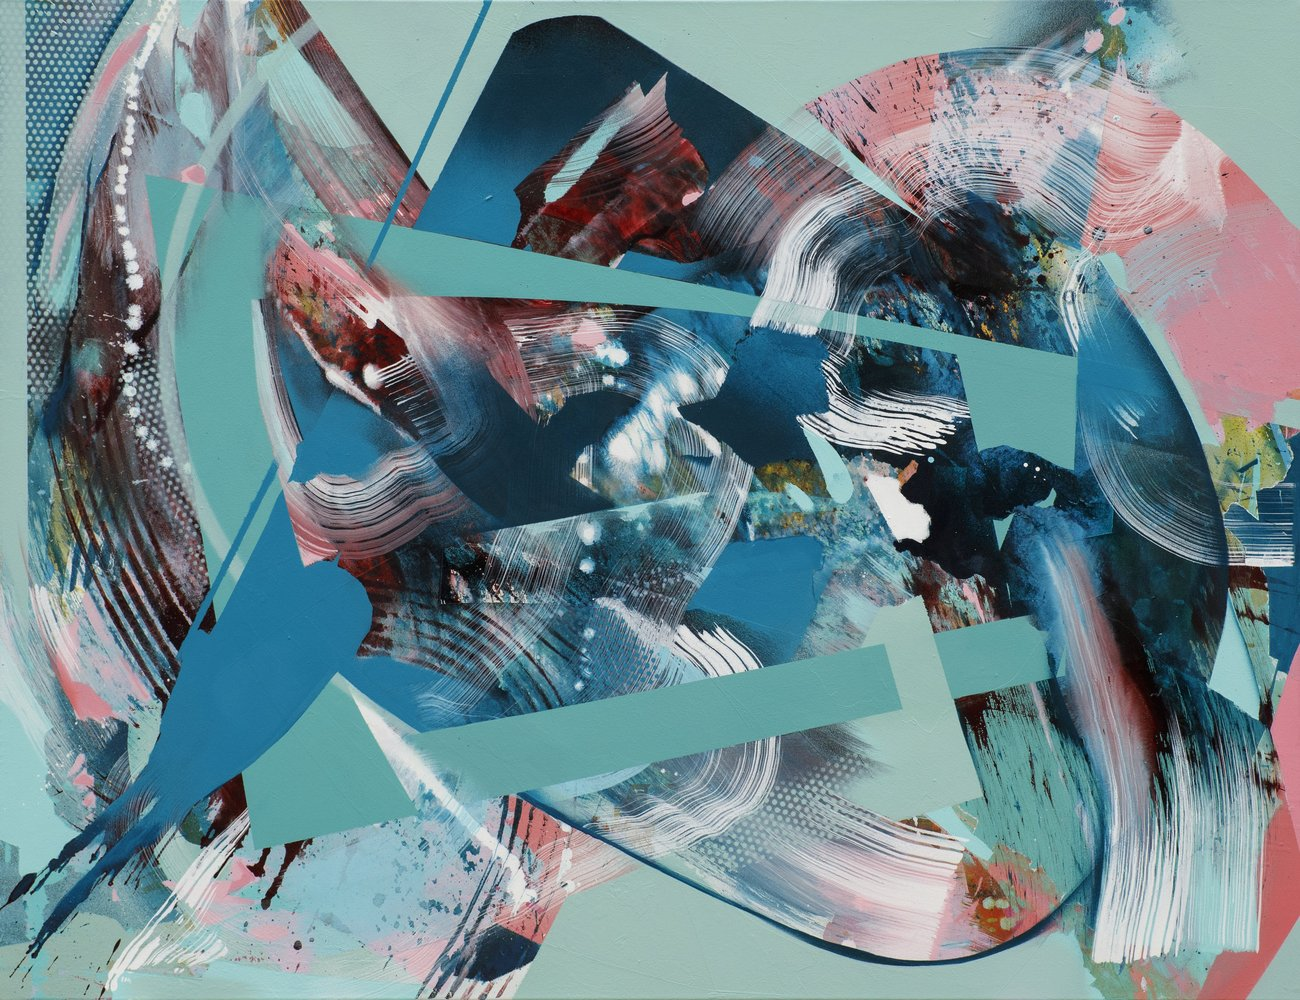 Julia Benz | It's not that complicated, acrylic, ink, spraypaint on canvas, 100 x 130 cm, 2021